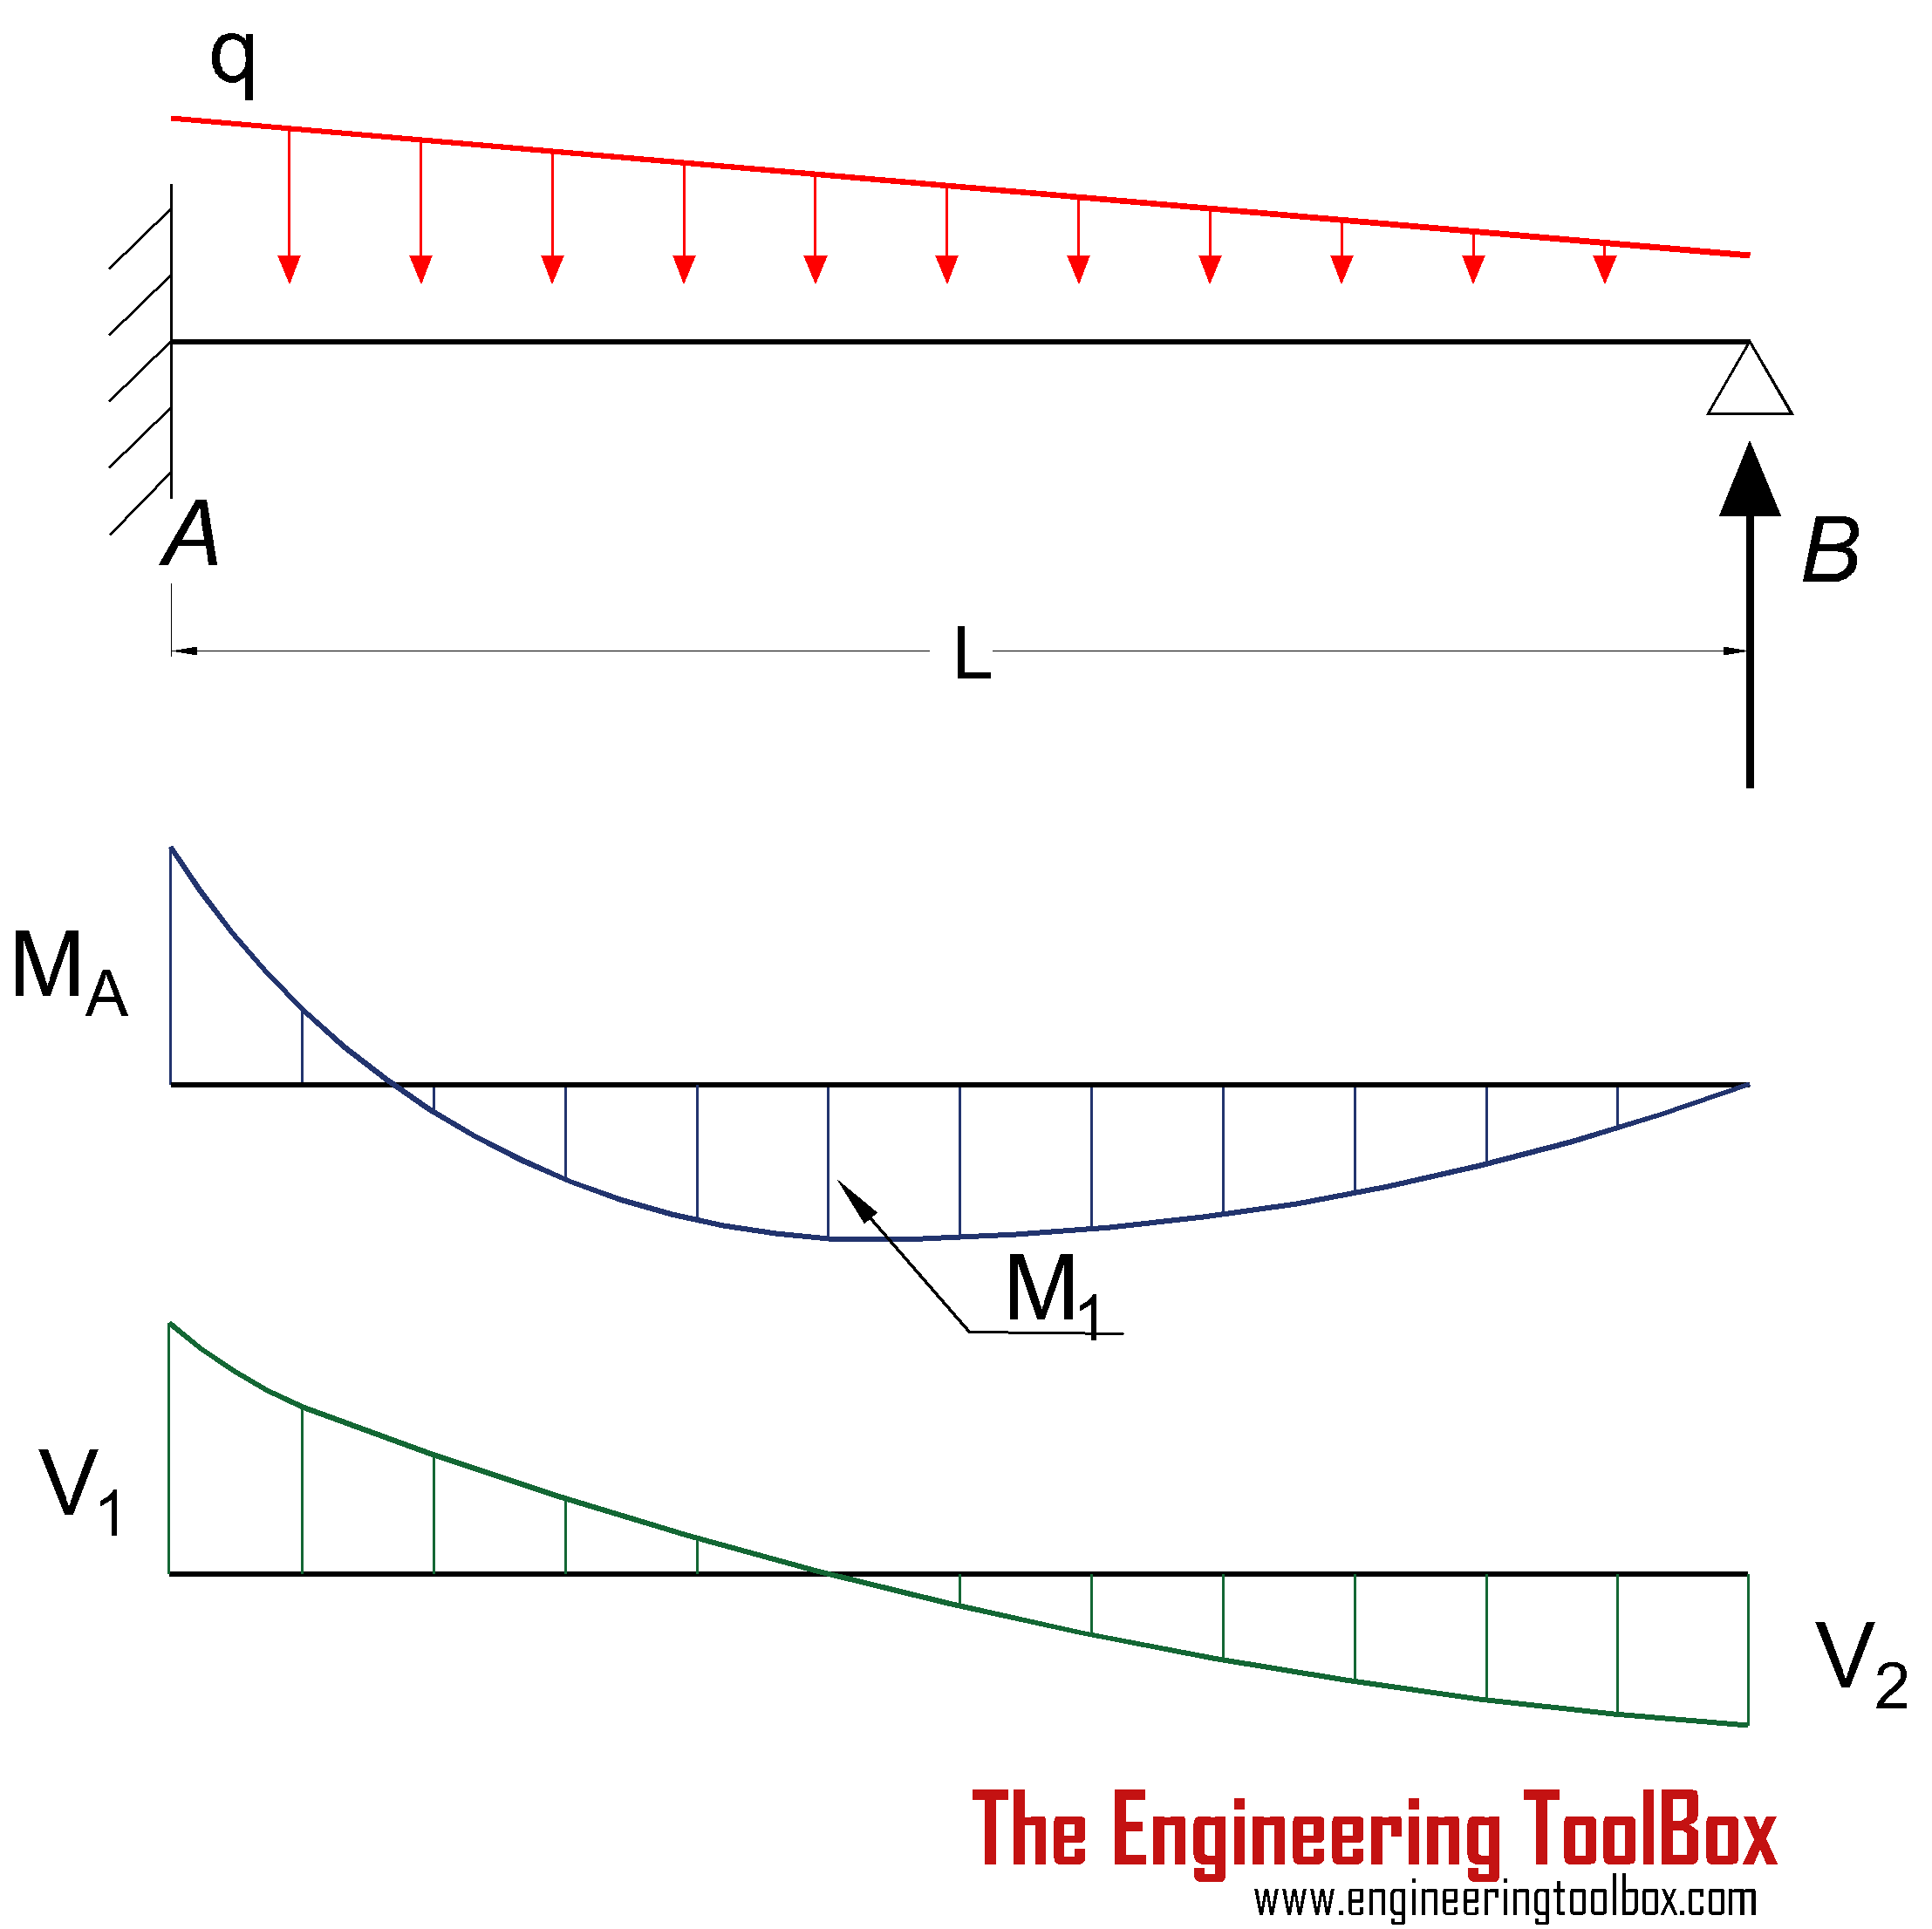 Beam fixed at one end and supported at the other - continous declining load